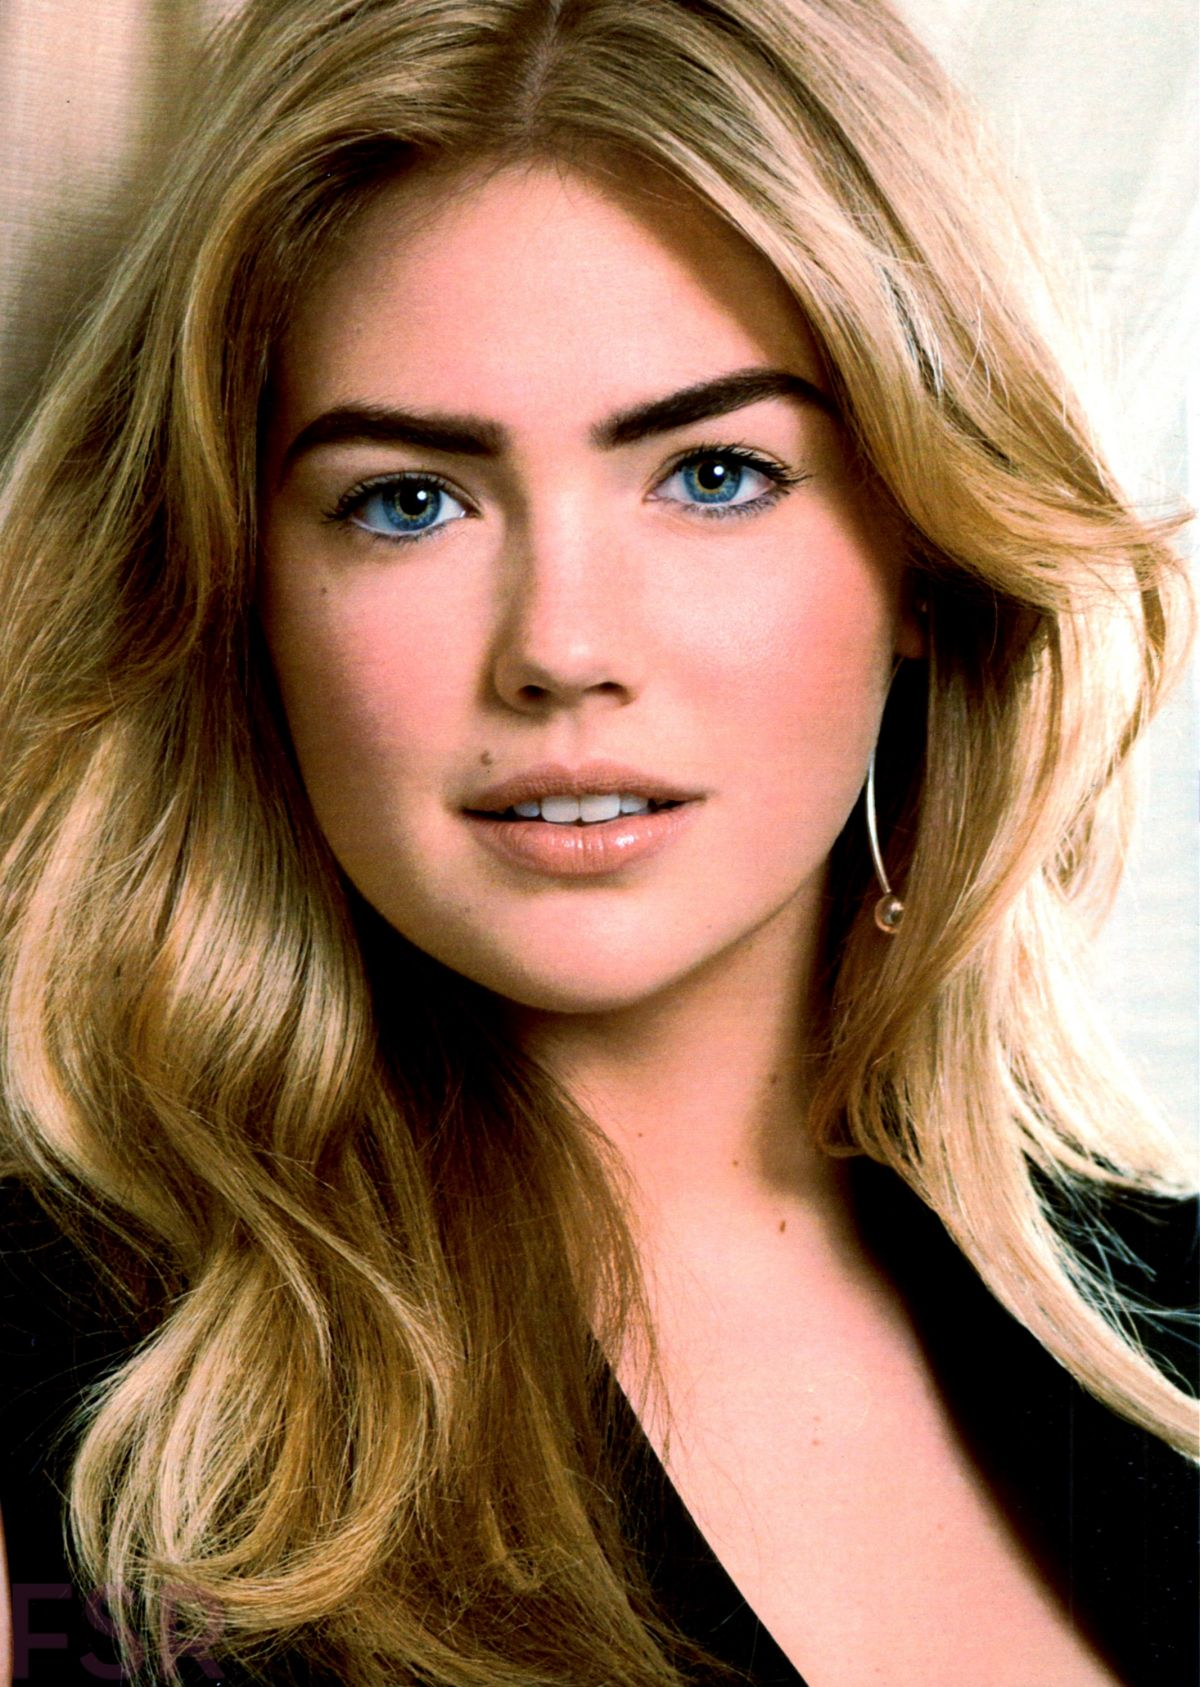 KATE UPTON in Cosmopolitan Magazine, October 2014 Issue